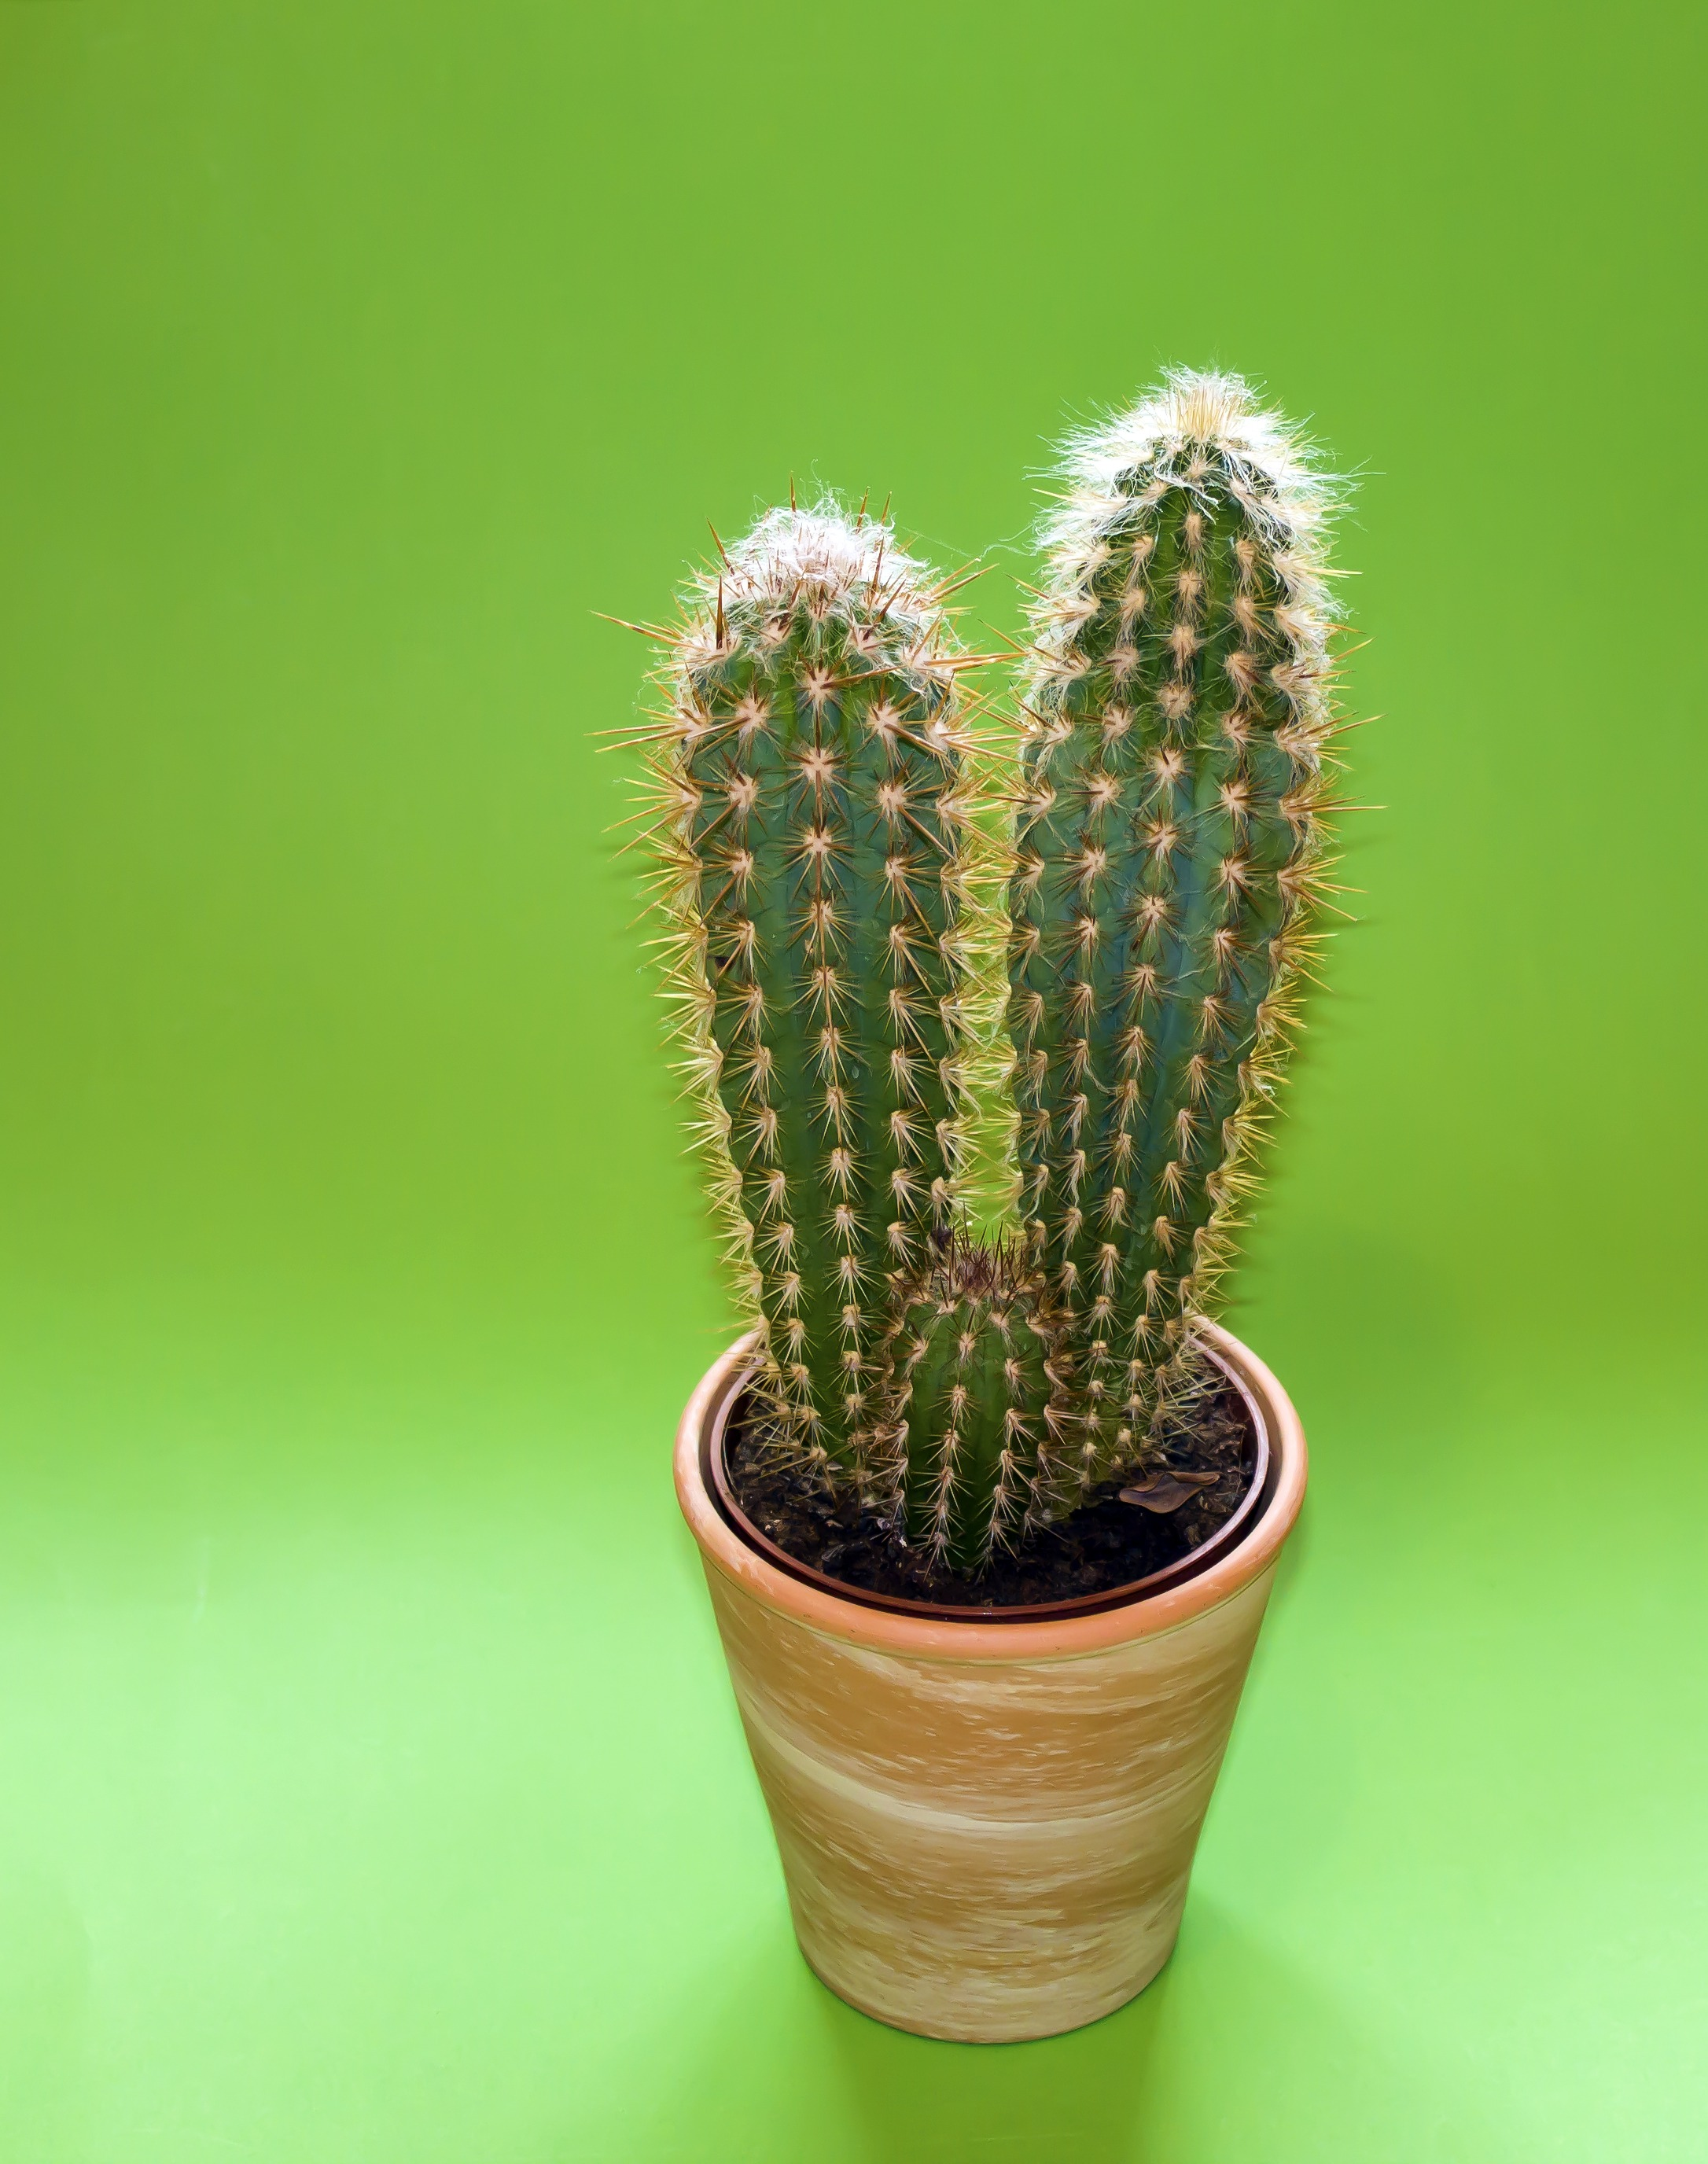 Best Iphone 4 Hd Wallpapers Cactus Plant On Brown Pot 183 Free Stock Photo